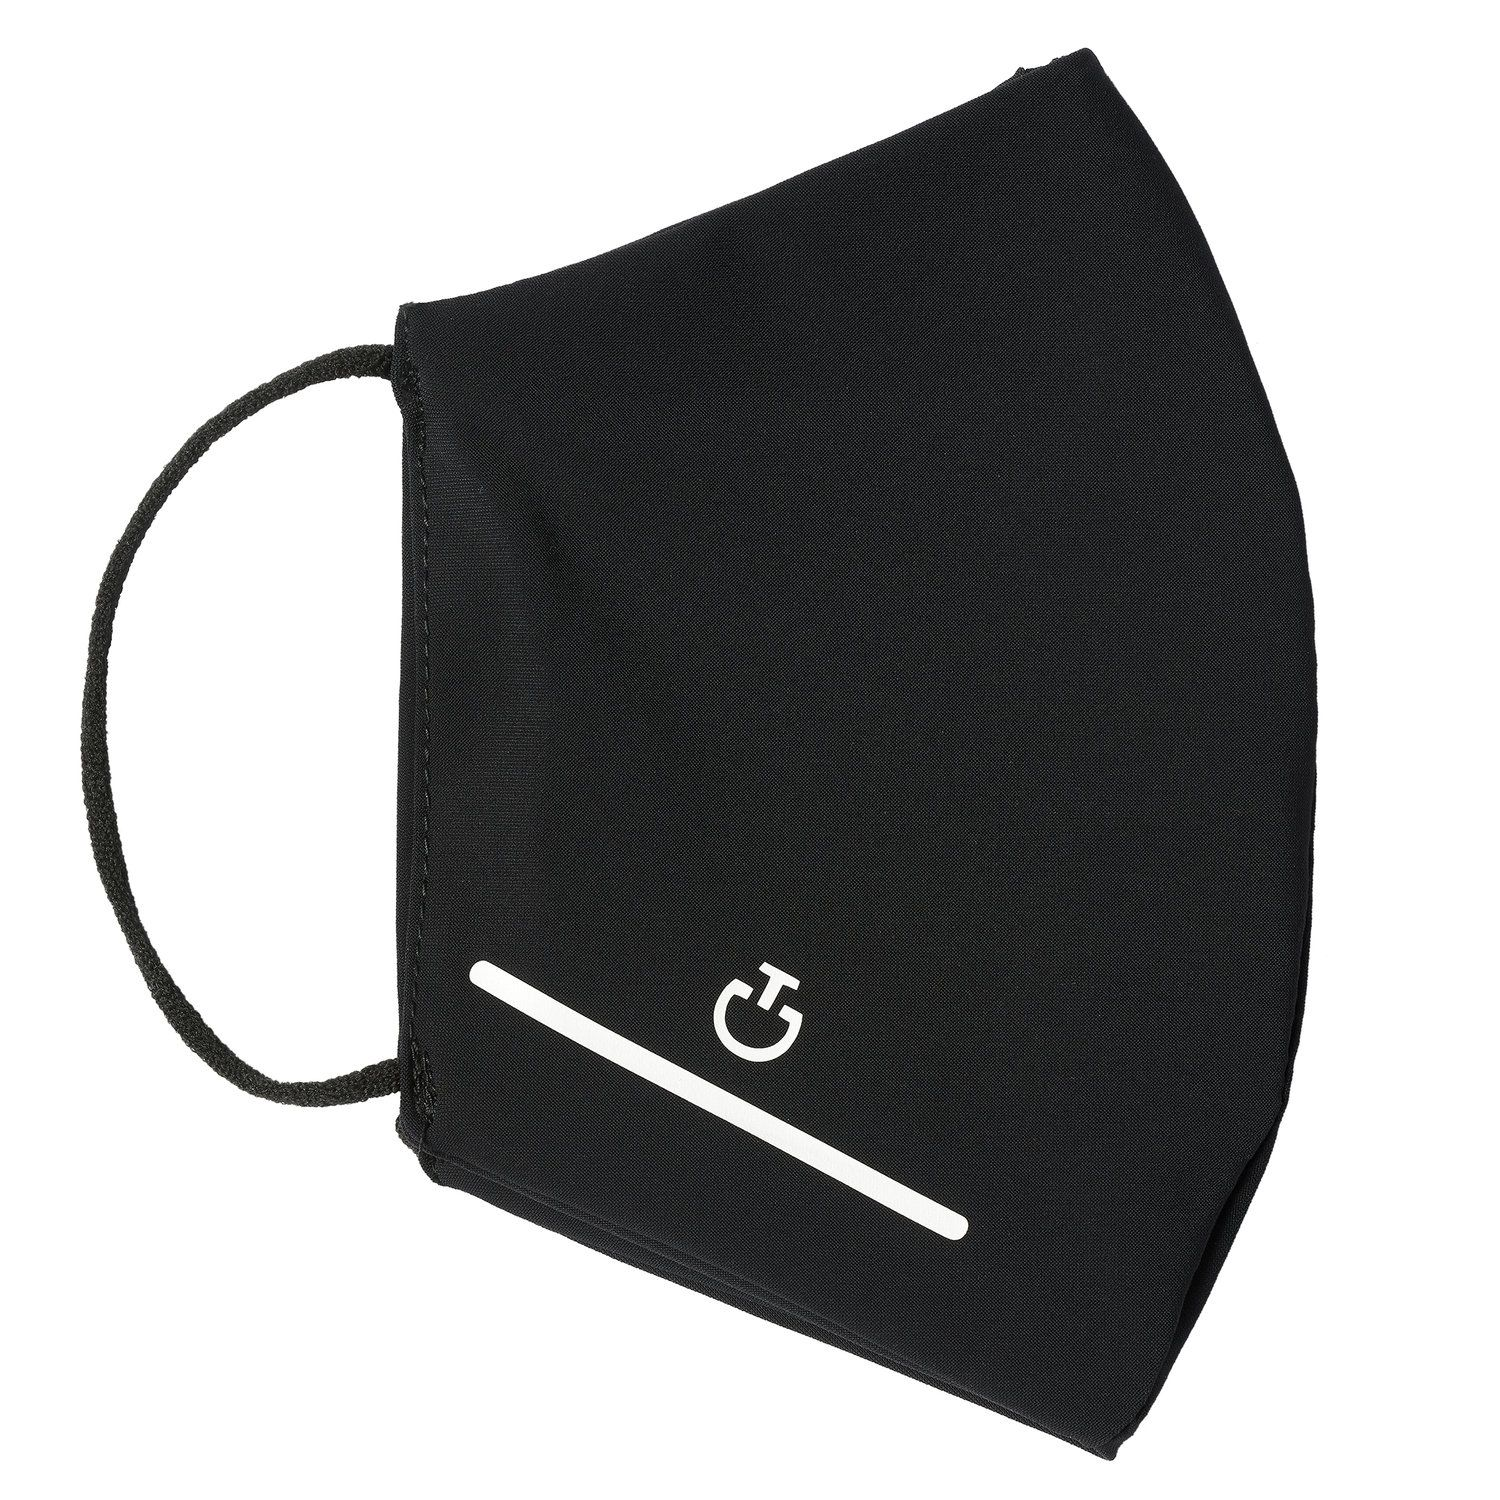 CT face mask